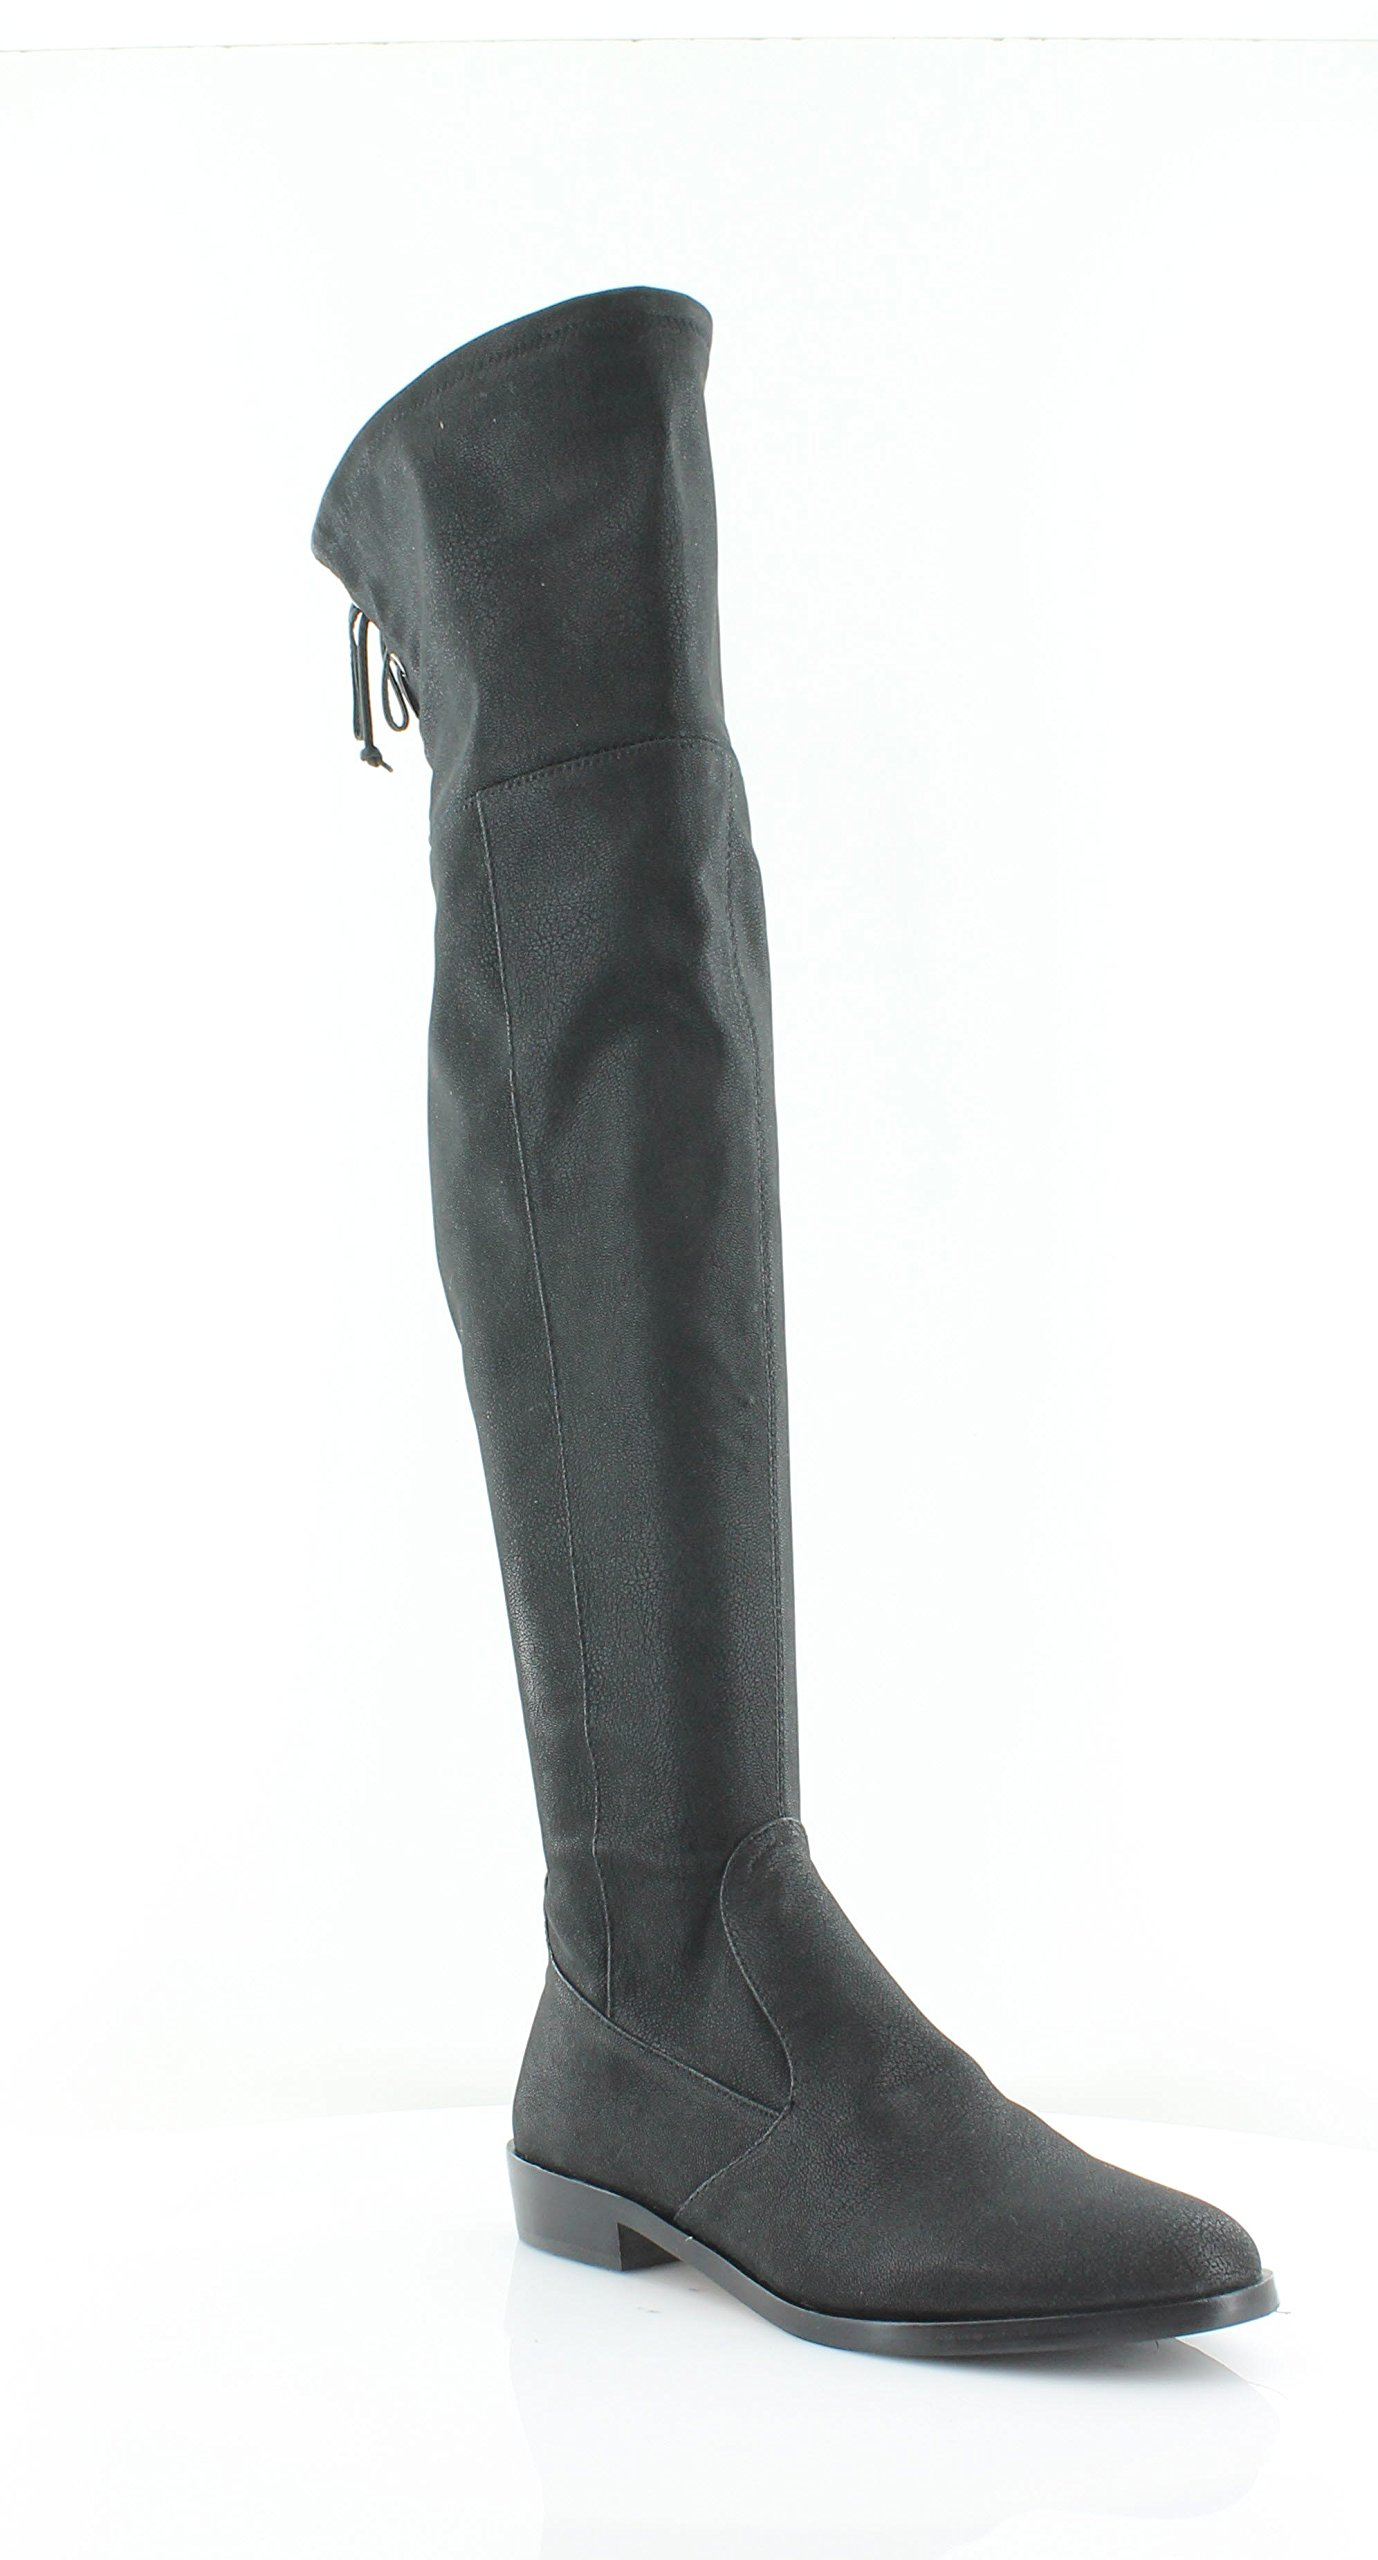 Vince Camuto Crisintha Women US 7.5 Black Over The Knee Boot